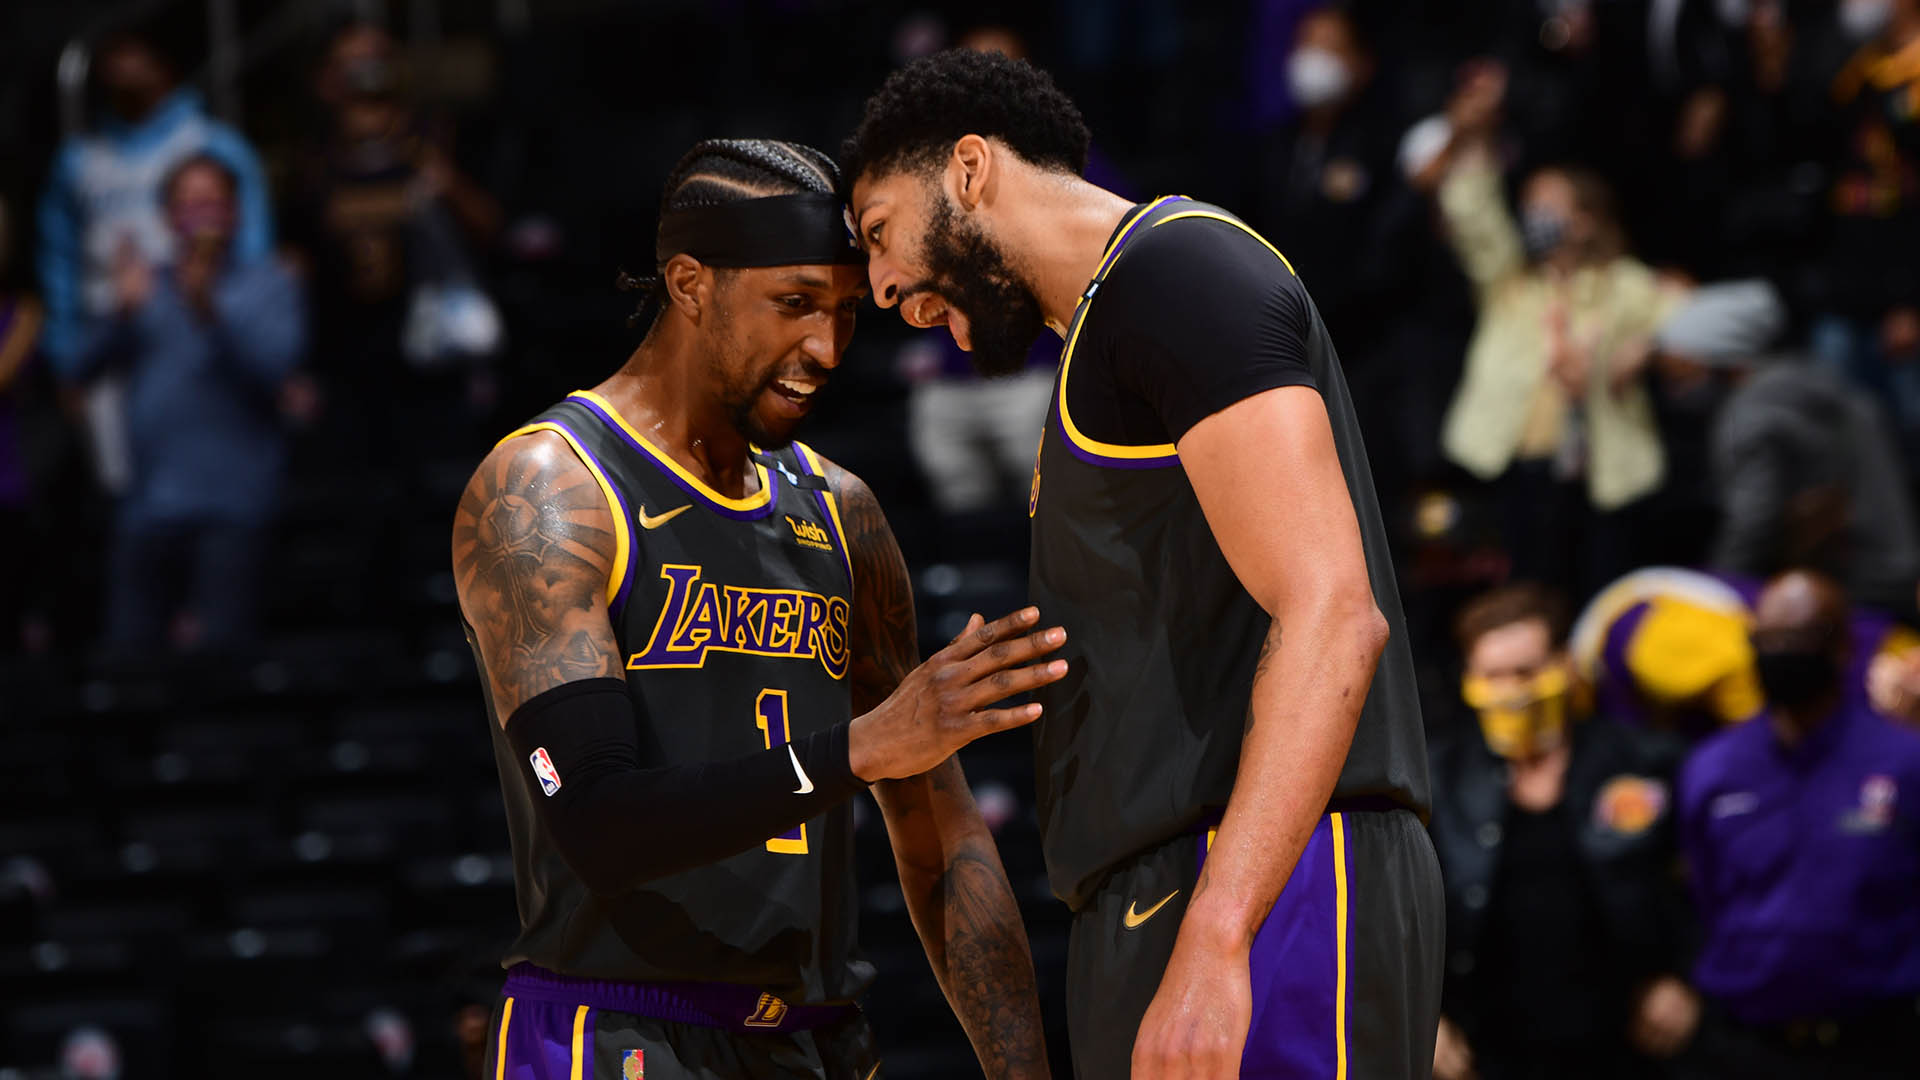 Power Rankings: Lakers find way back into Top 10